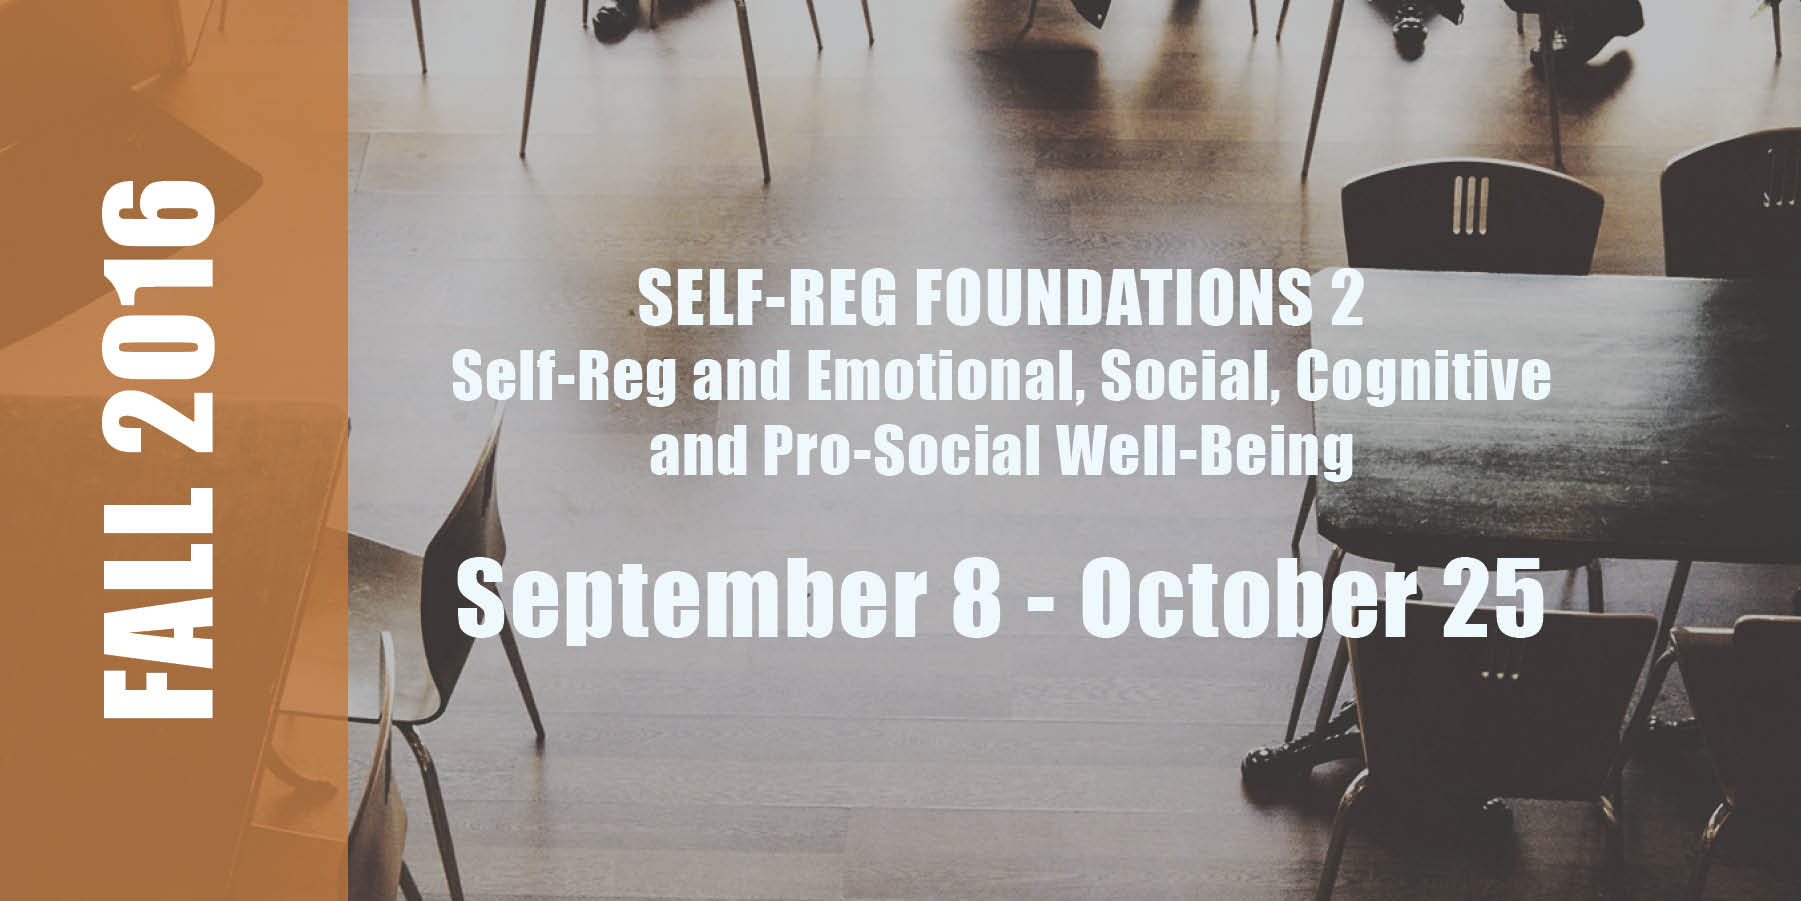 S-R Foundations 2    Date:  September 8 - October 25